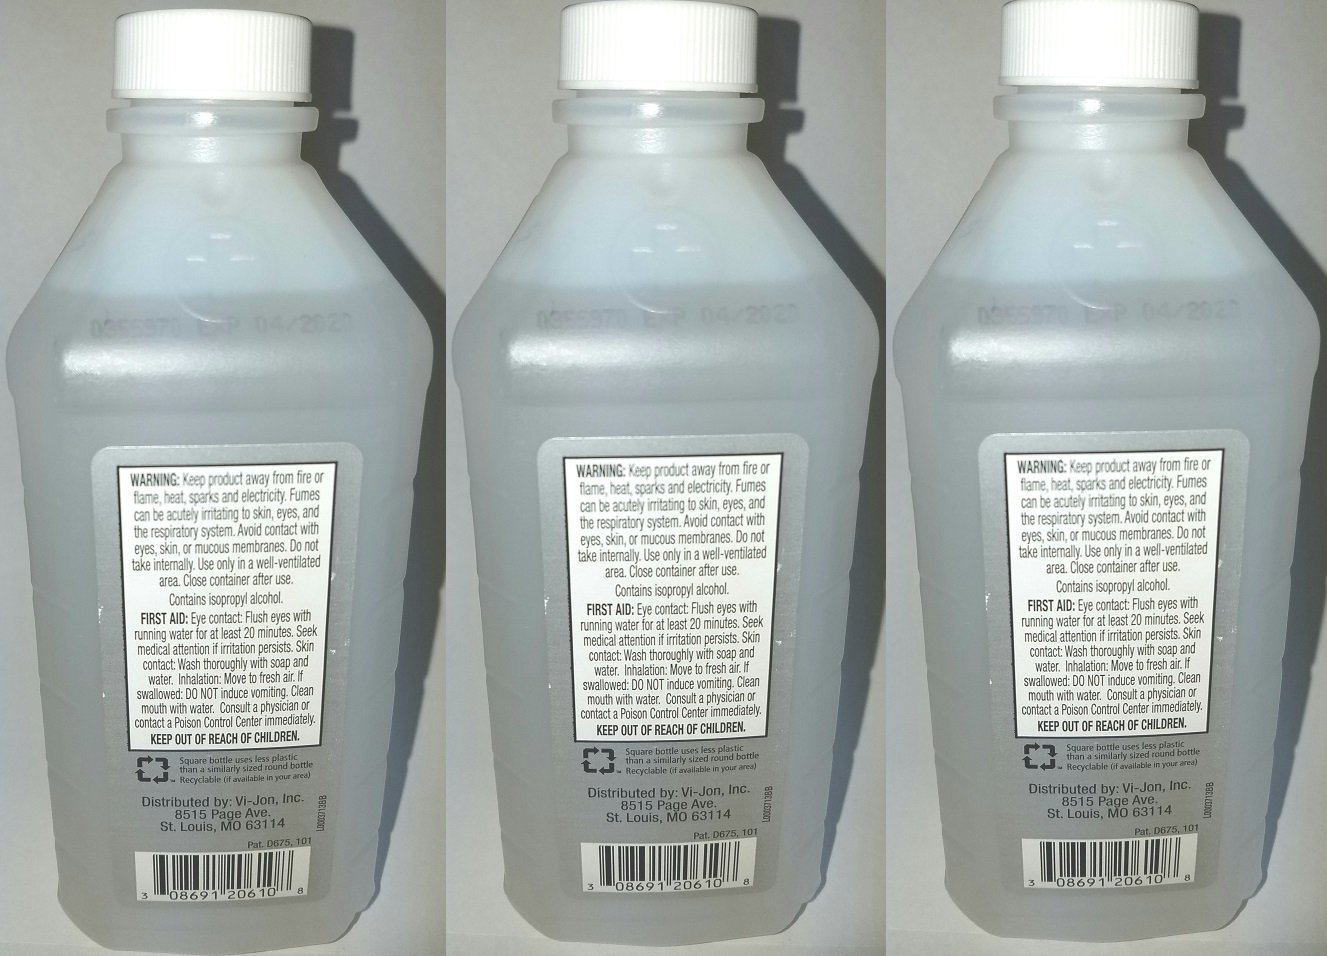 99% Isopropyl Alcohol Antiseptic Solution - 16 OZ - 3 Pack product image